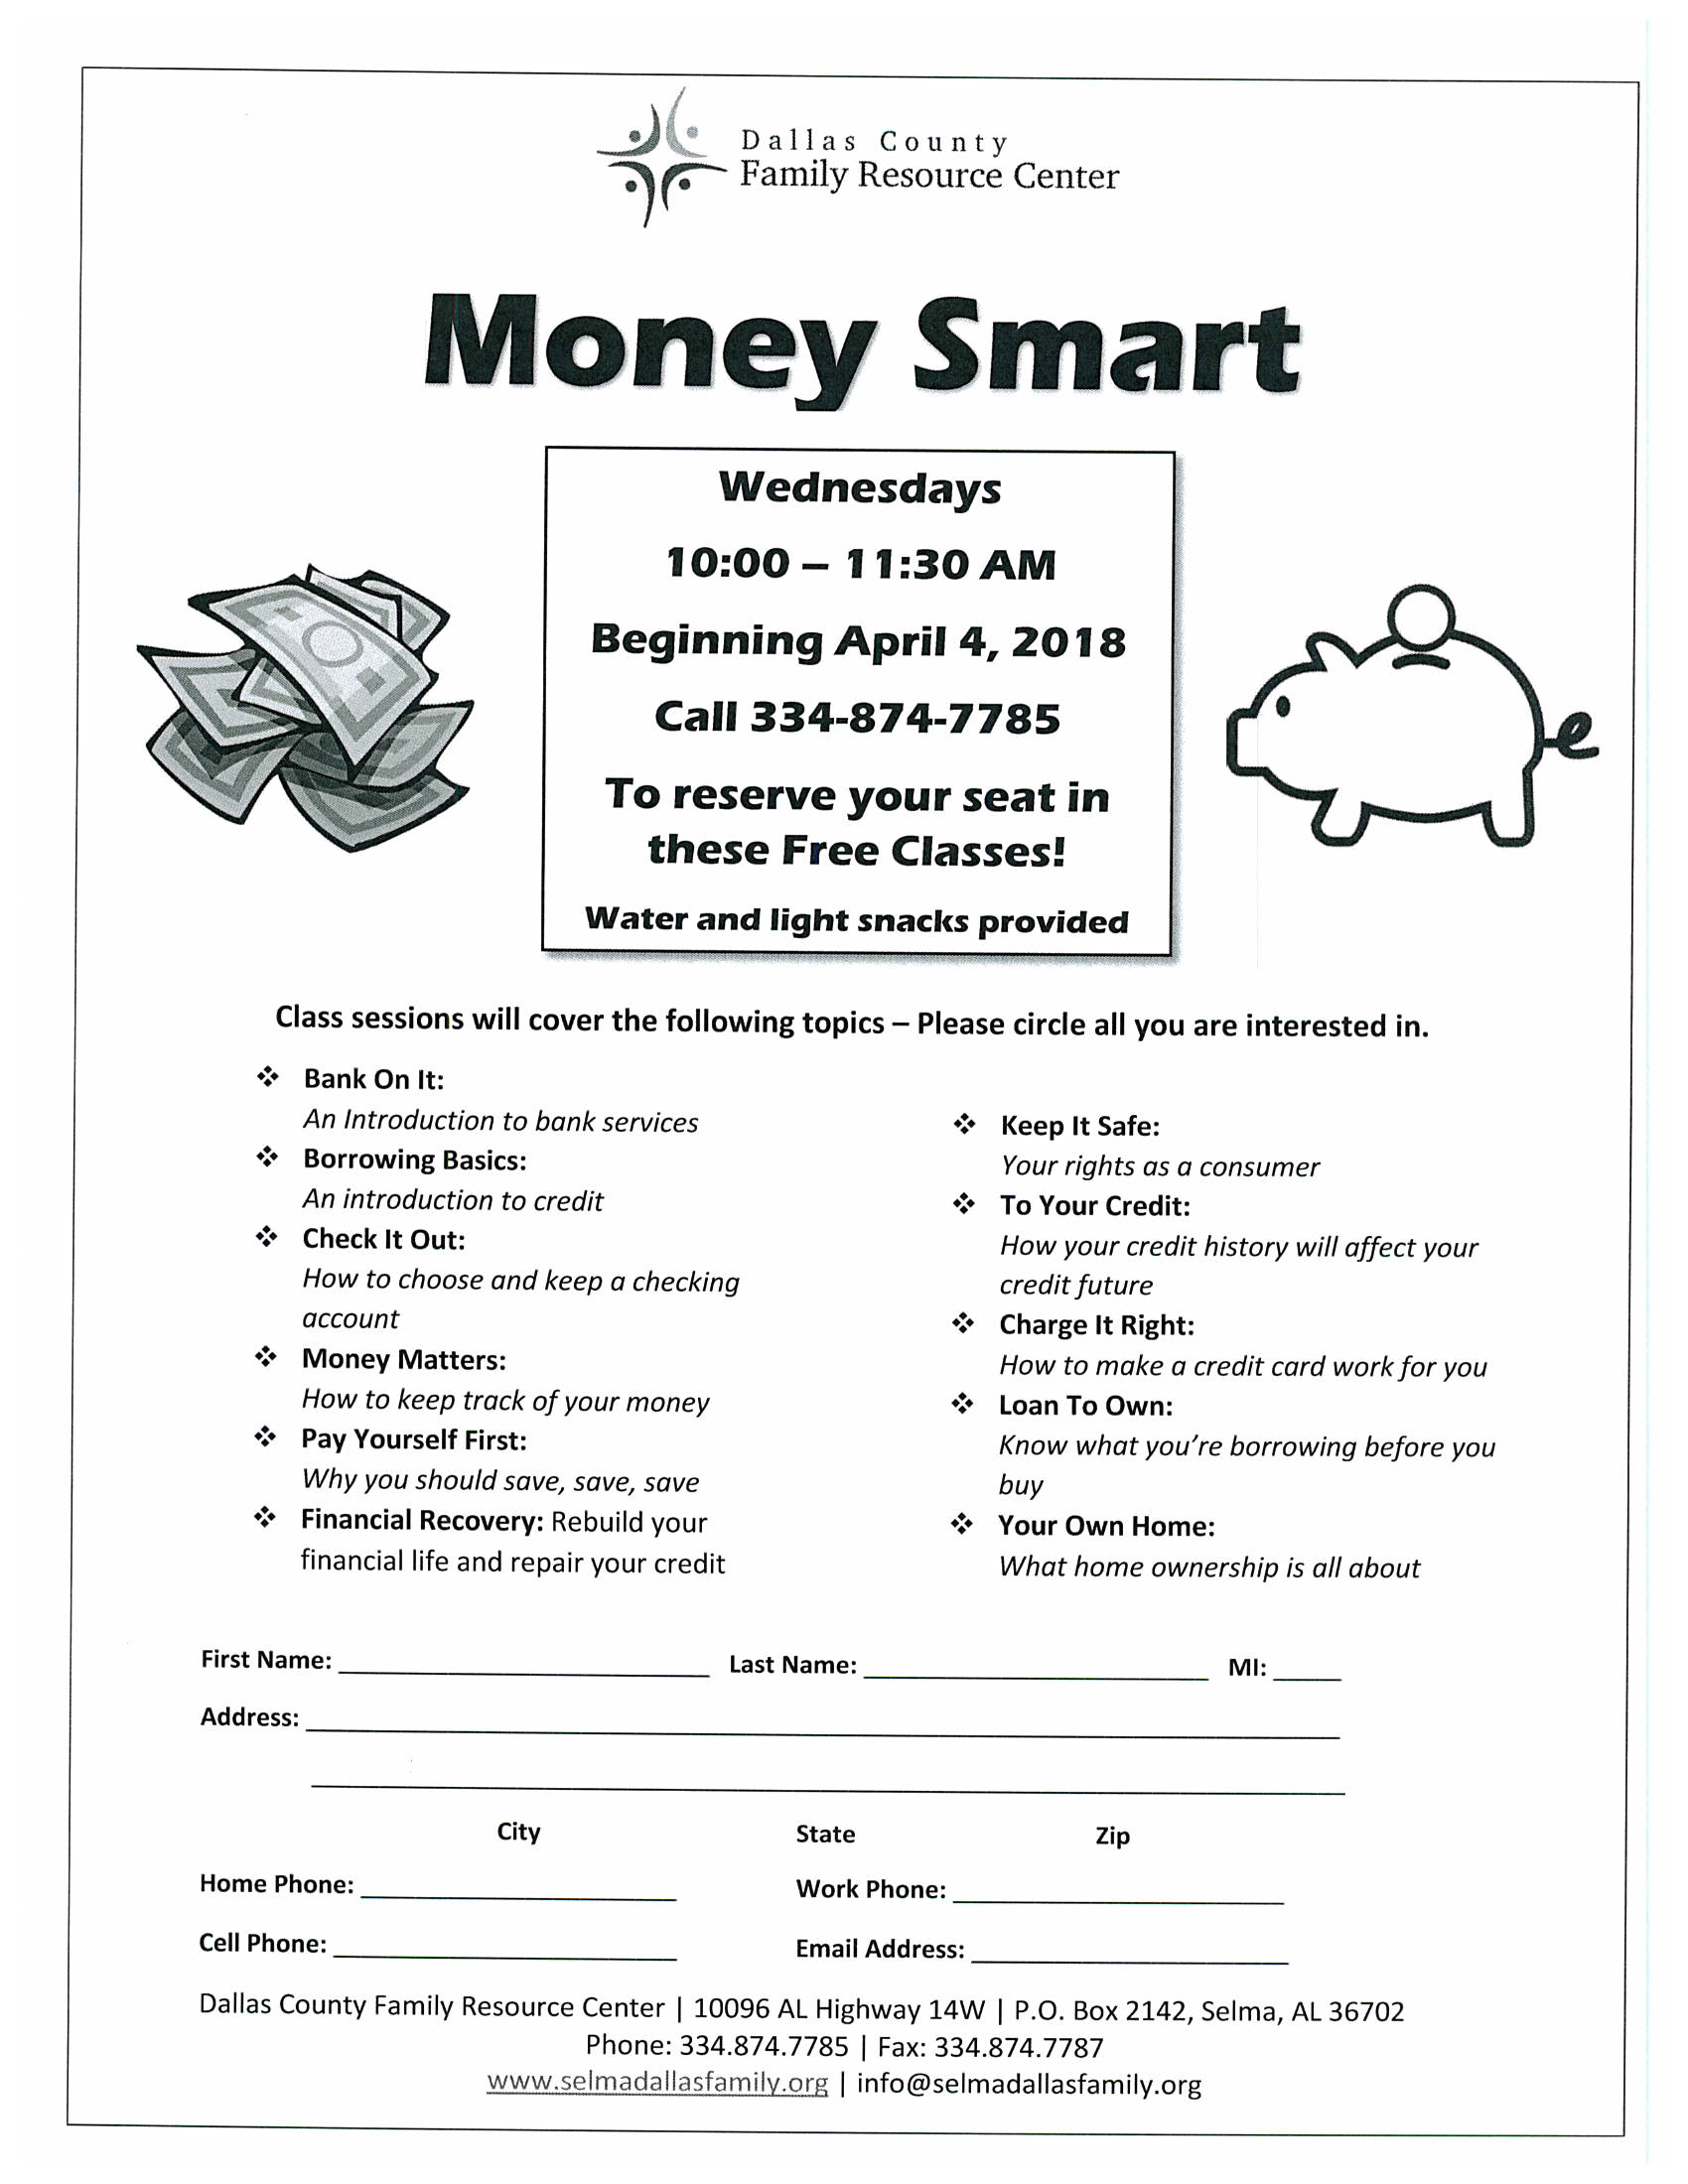 Money Smart Classes